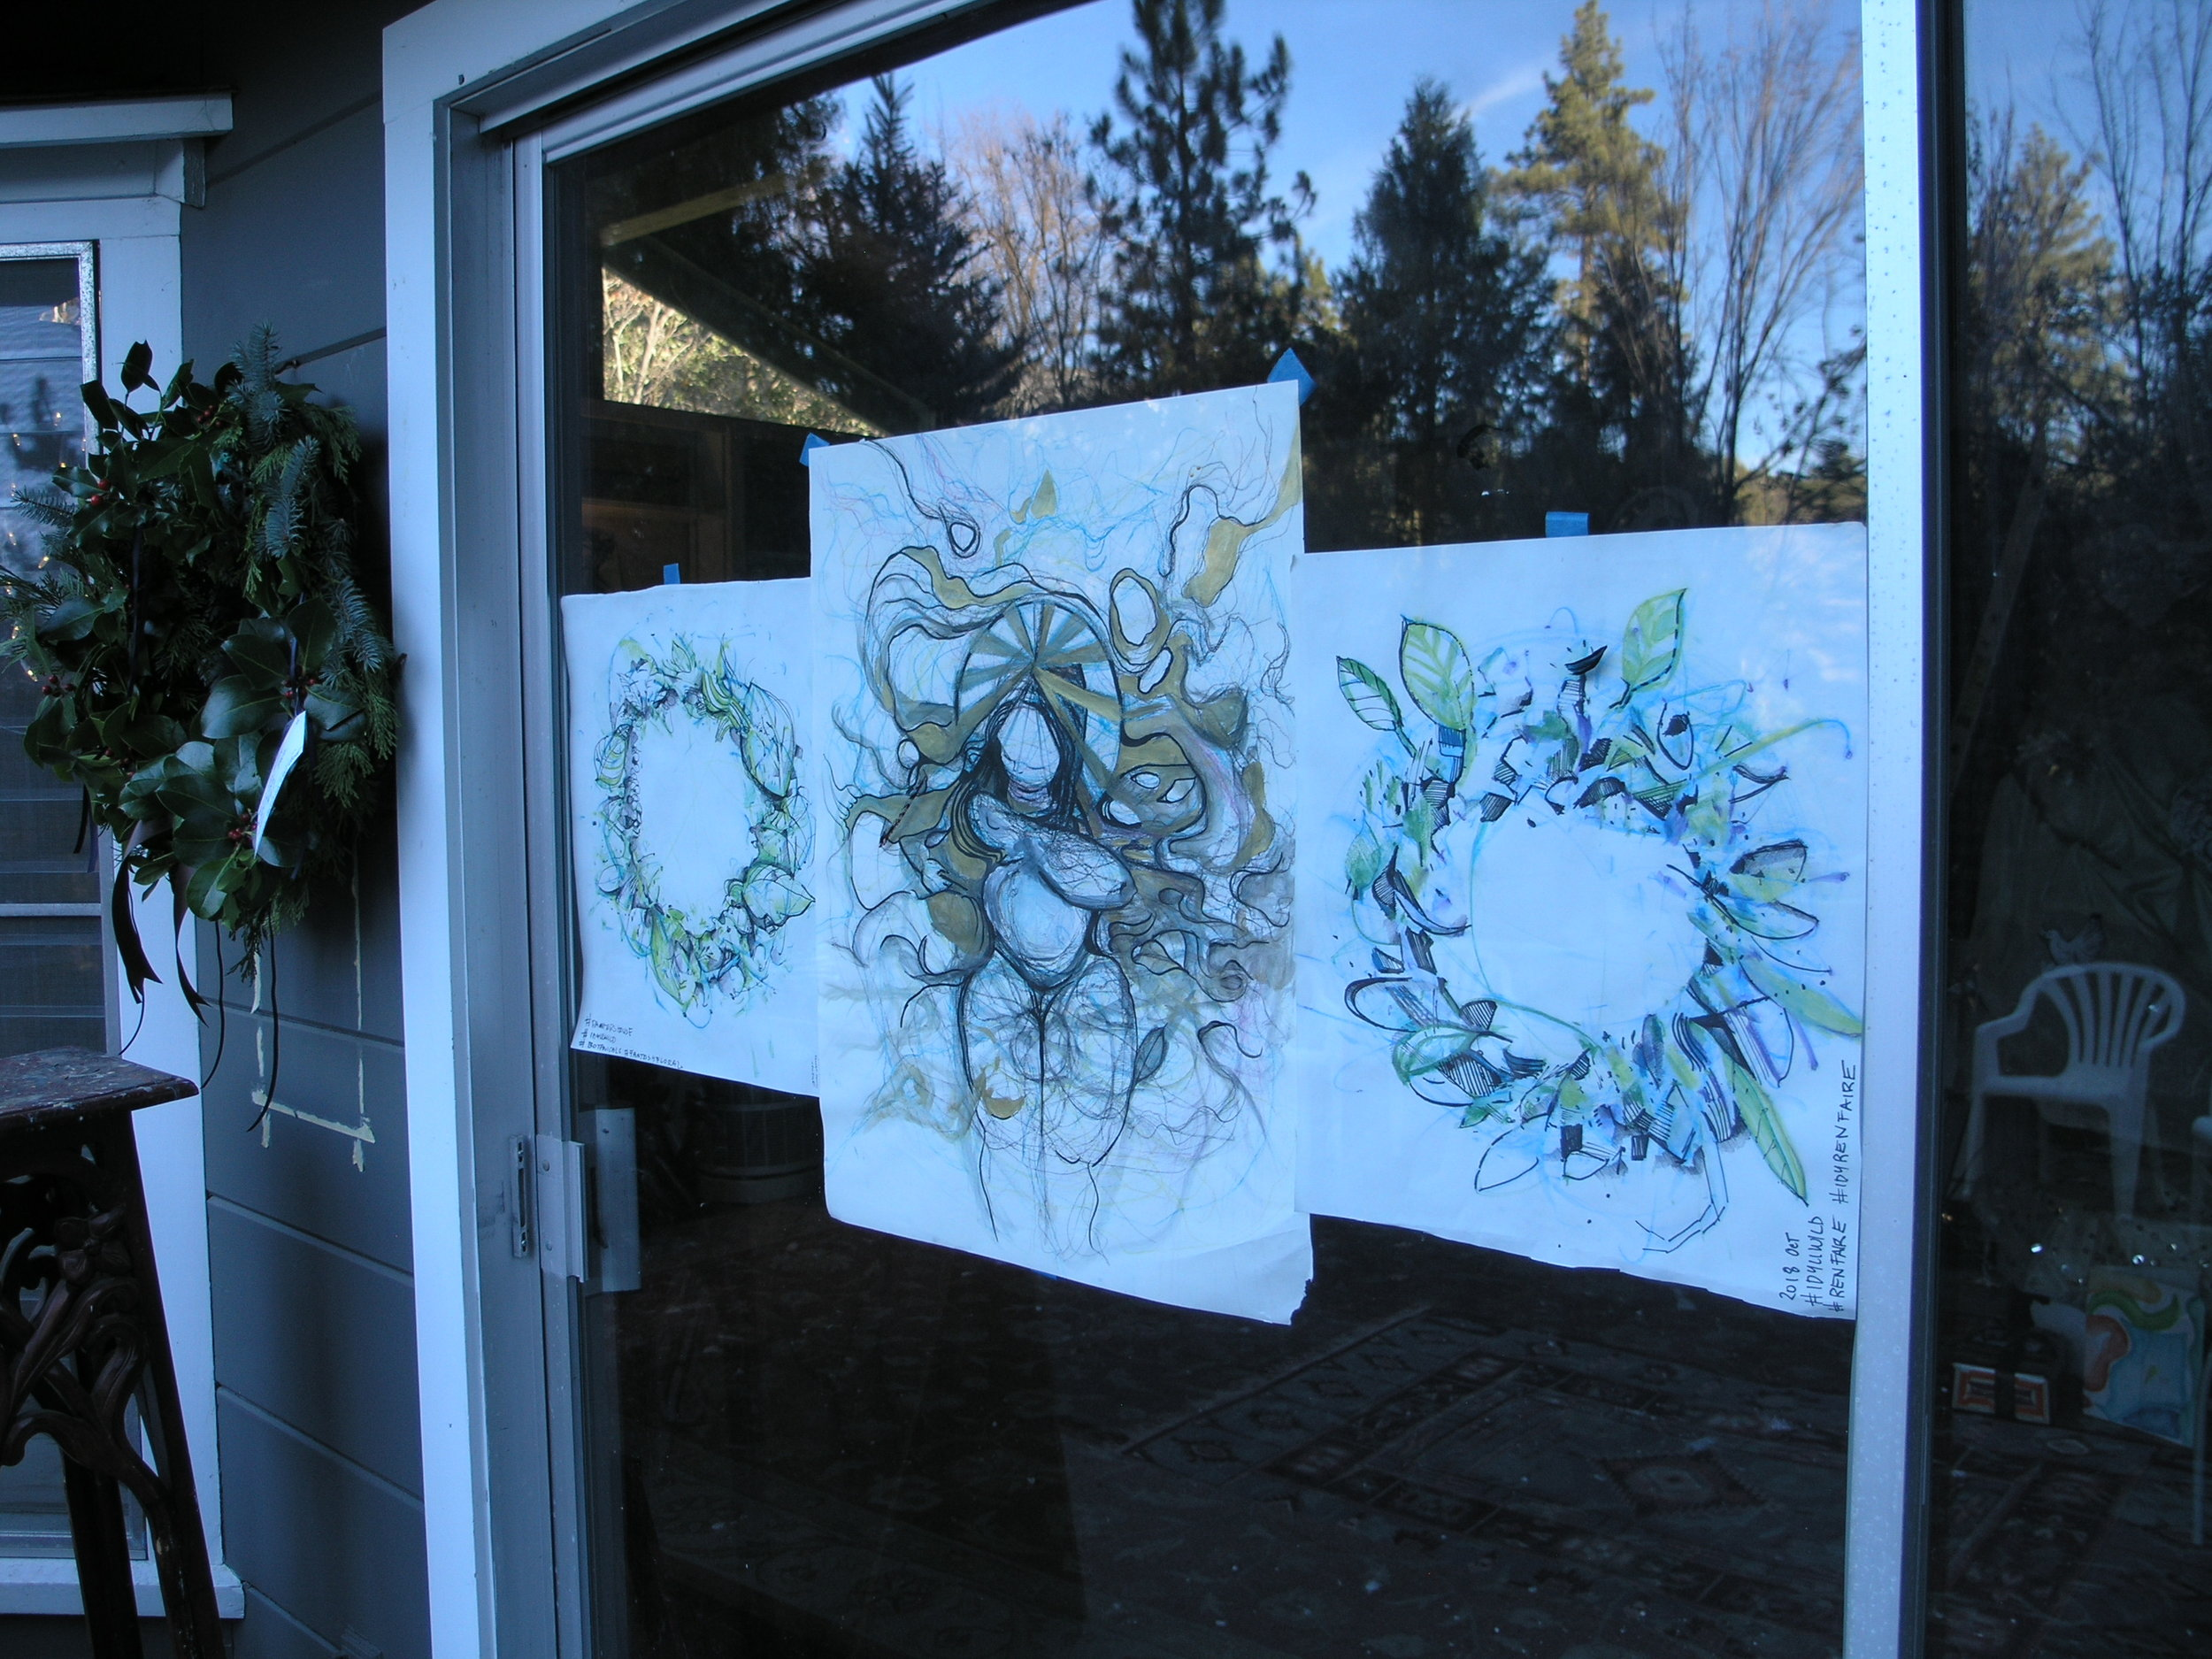 Angels and Wreaths being added to PaintersHouse Idyllwild Civic Art Rentals for a variety of community events and gatherings.